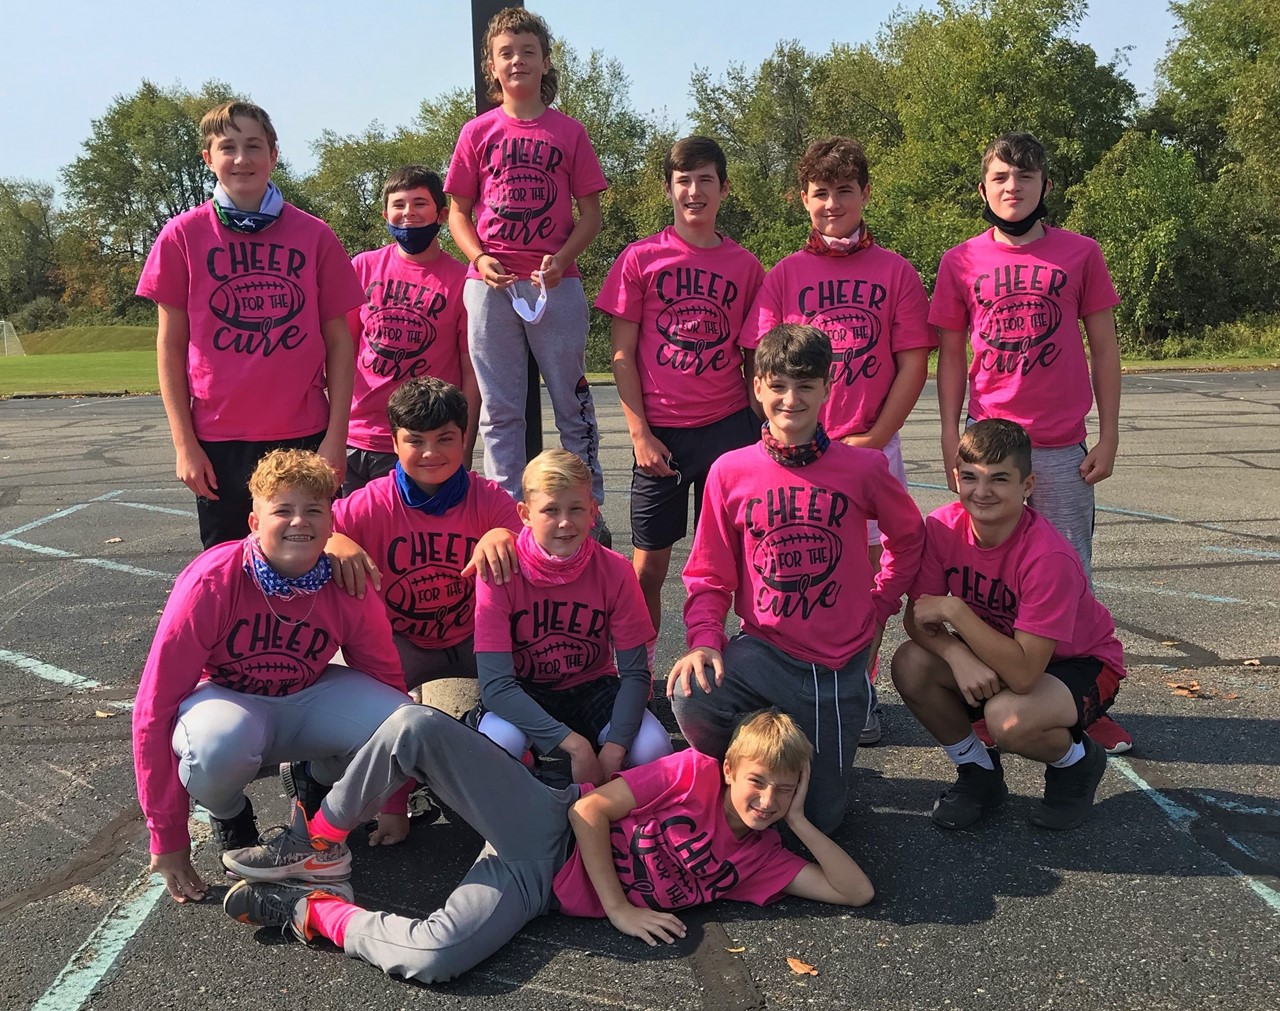 7th Grade Football Team Wears Pink For Cheer For The Cure